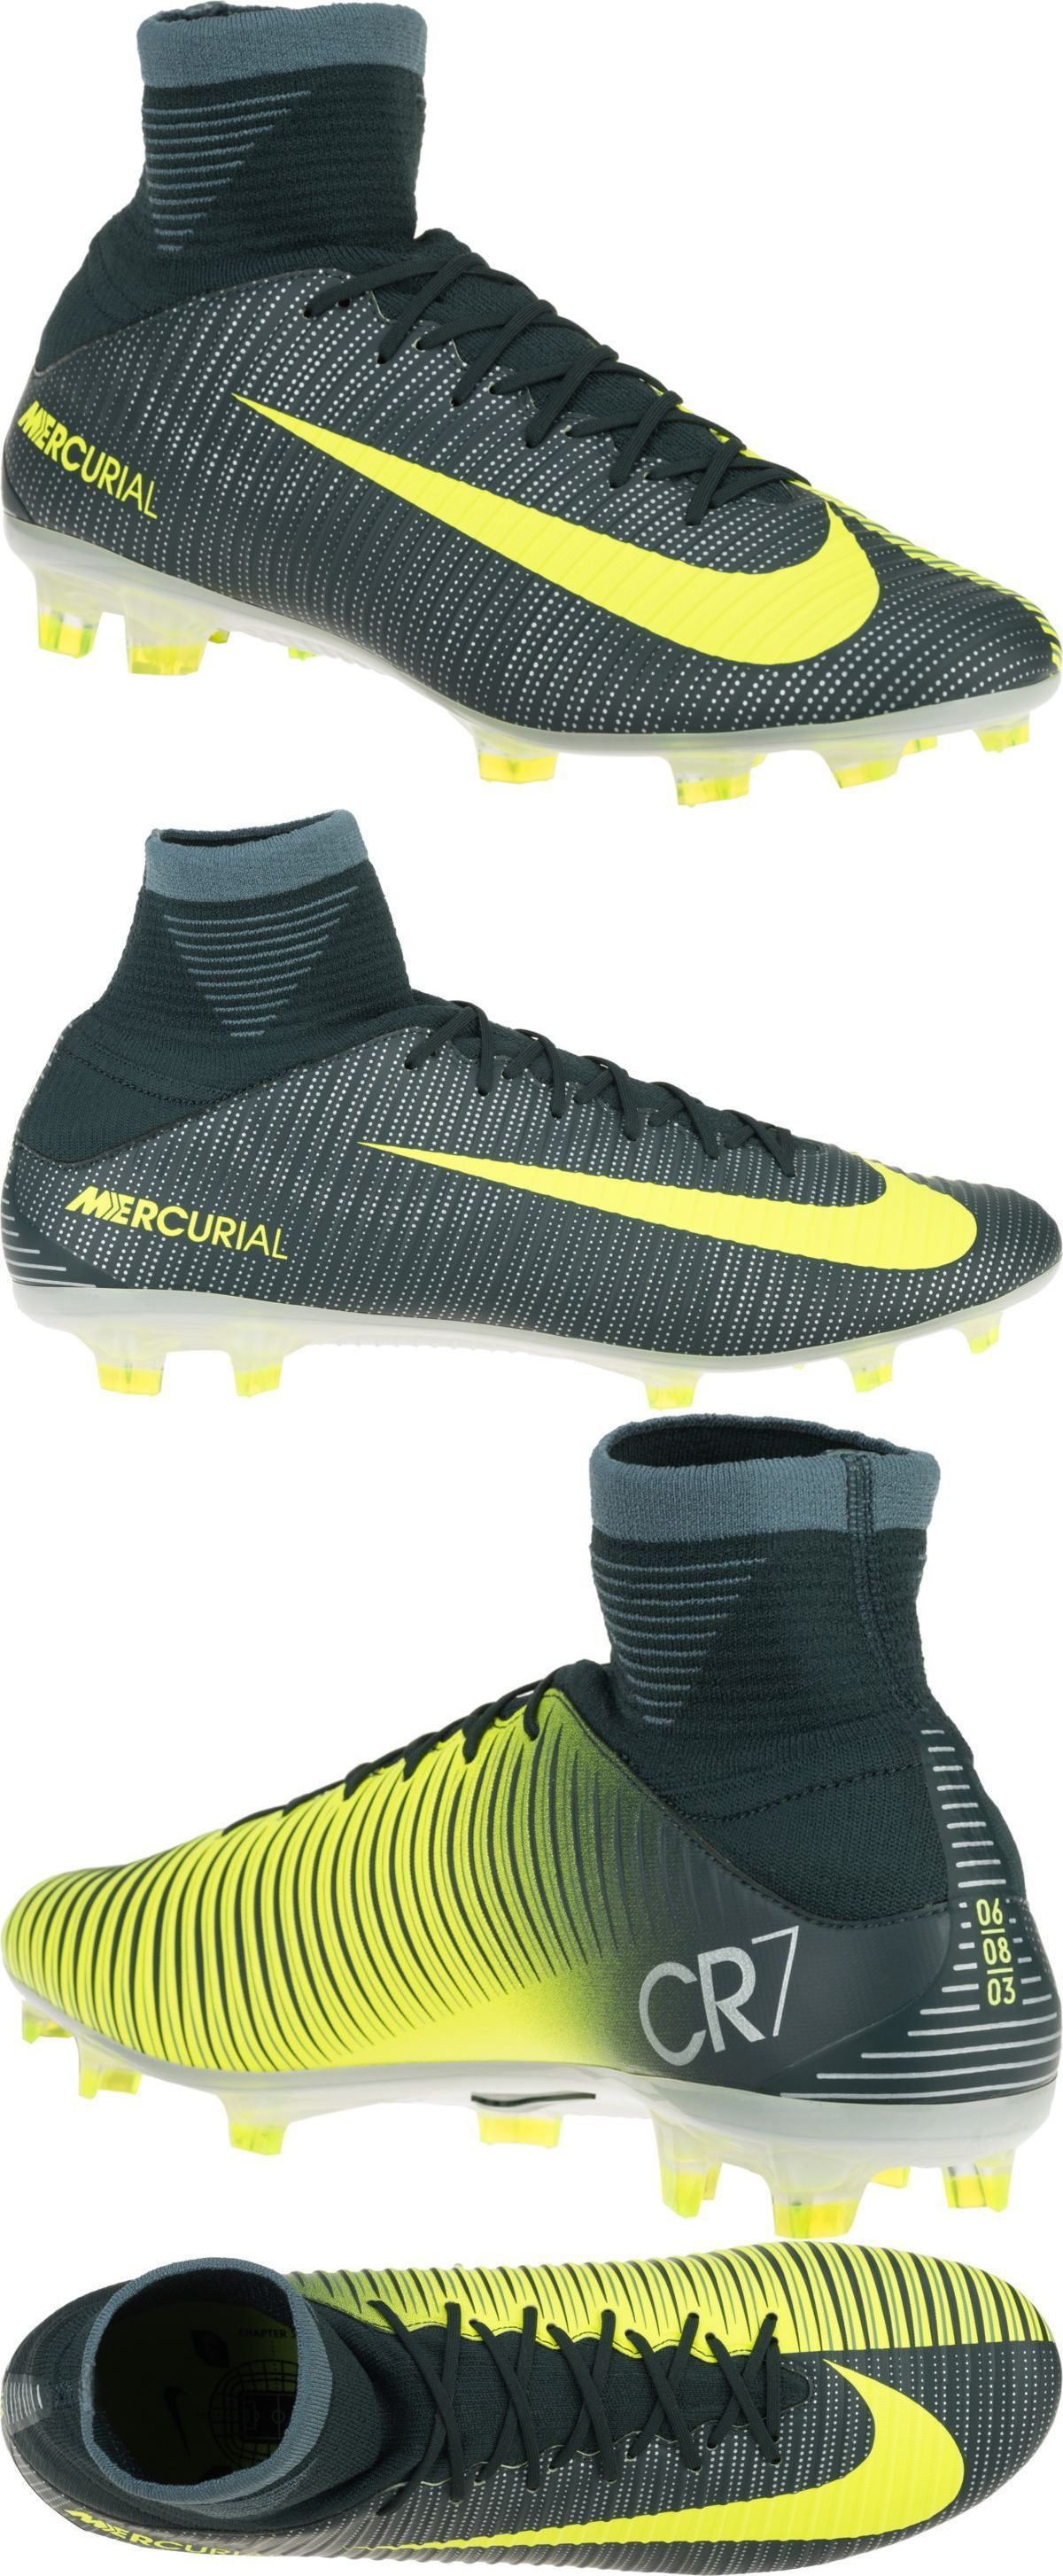 Atticus Cambios de busto  Clothing Shoes and Accessories 159178: New Men'S Nike Mercurial Veloce Iii  Df Cr7 Fg Soccer Shoes!!! $180 Retail… | Soccer shoes, Football boots,  Clothing and shoes